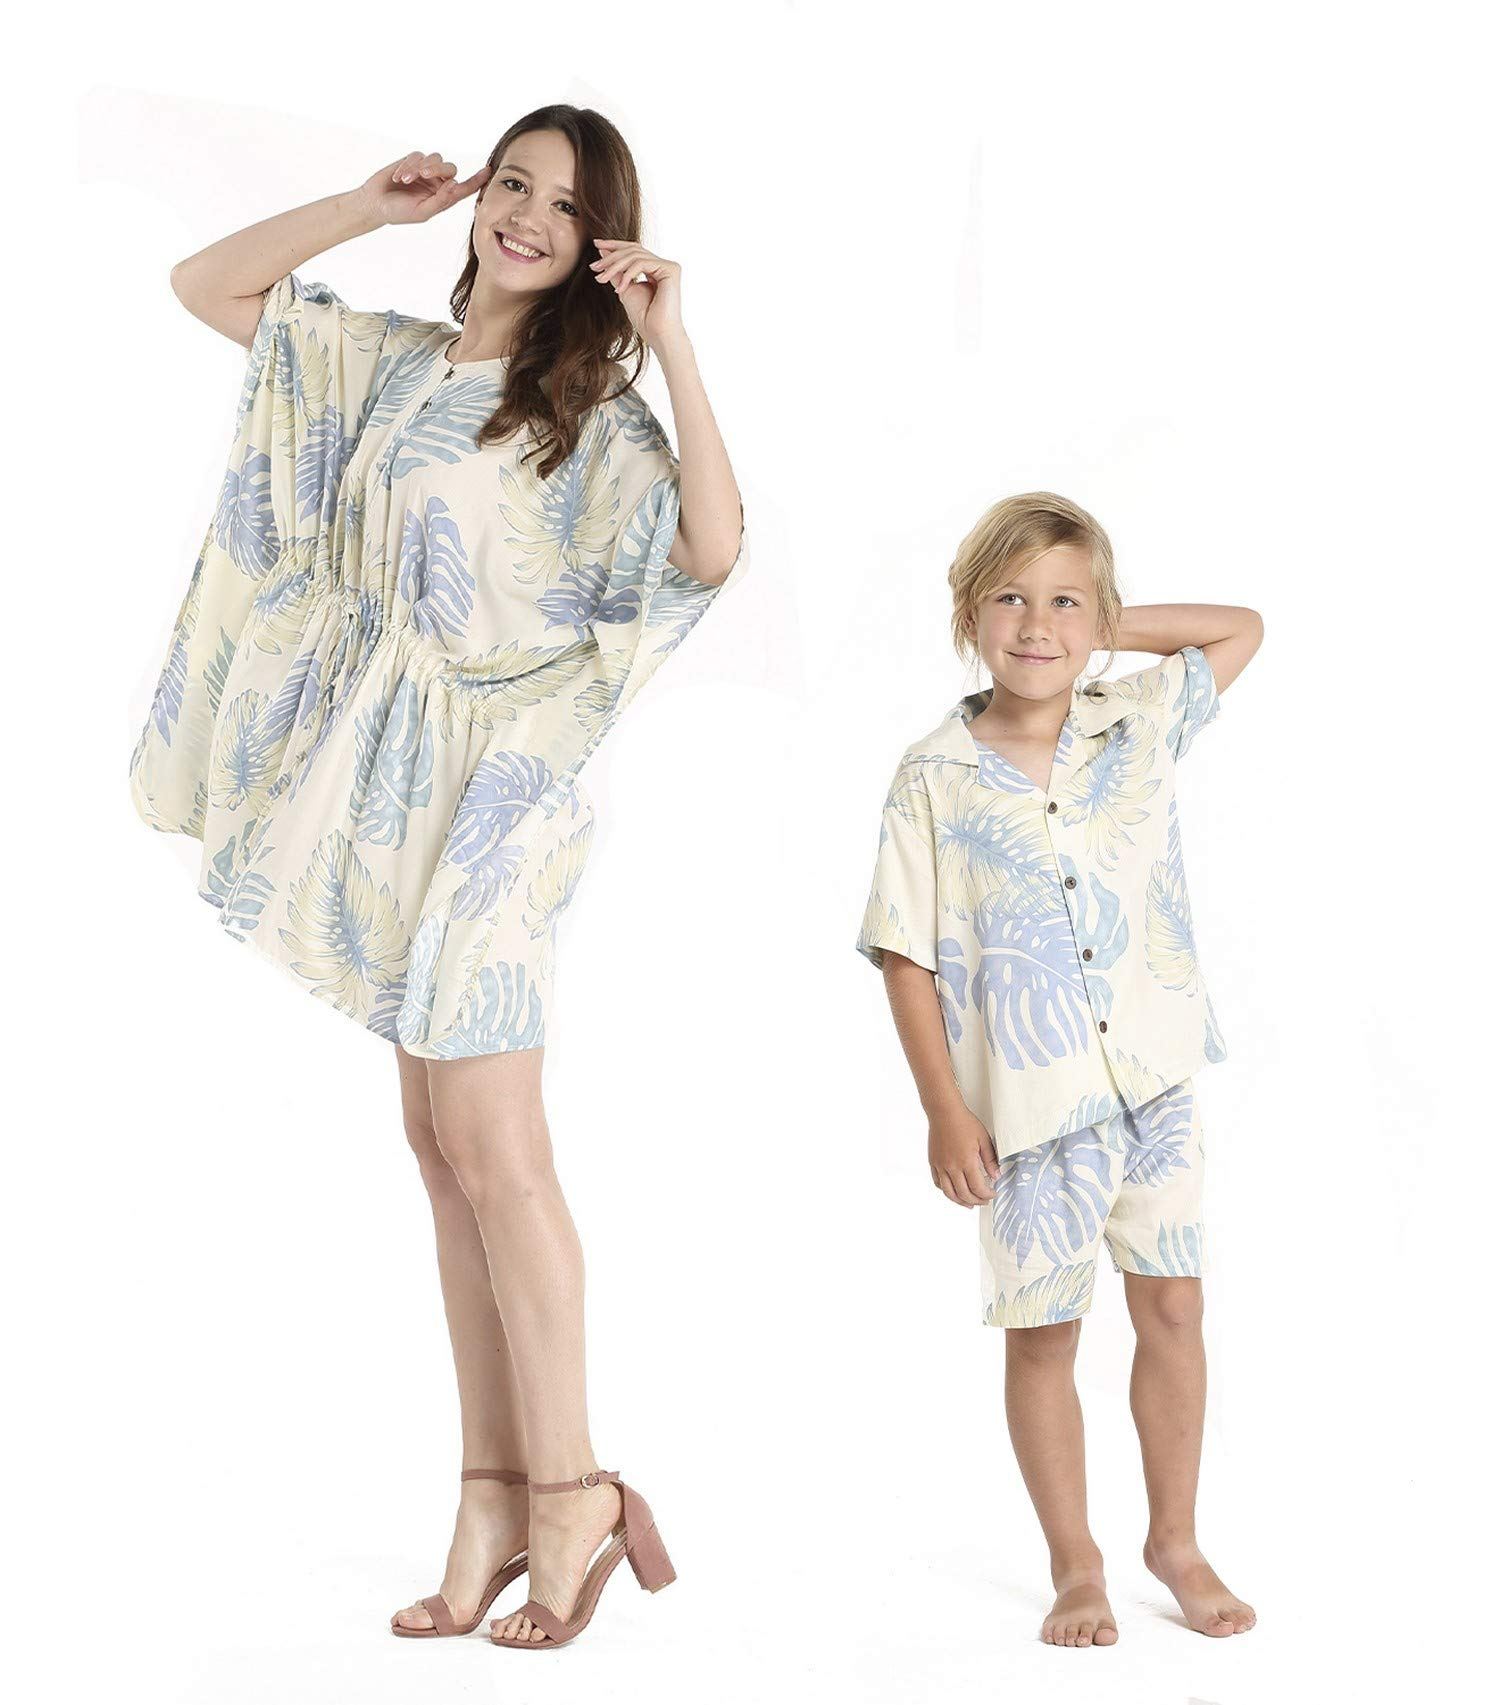 Matching Mother Son Hawaiian Luau Outfit Poncho Dress Shirt in Palm Leaves Cream Women One Size Boy 14